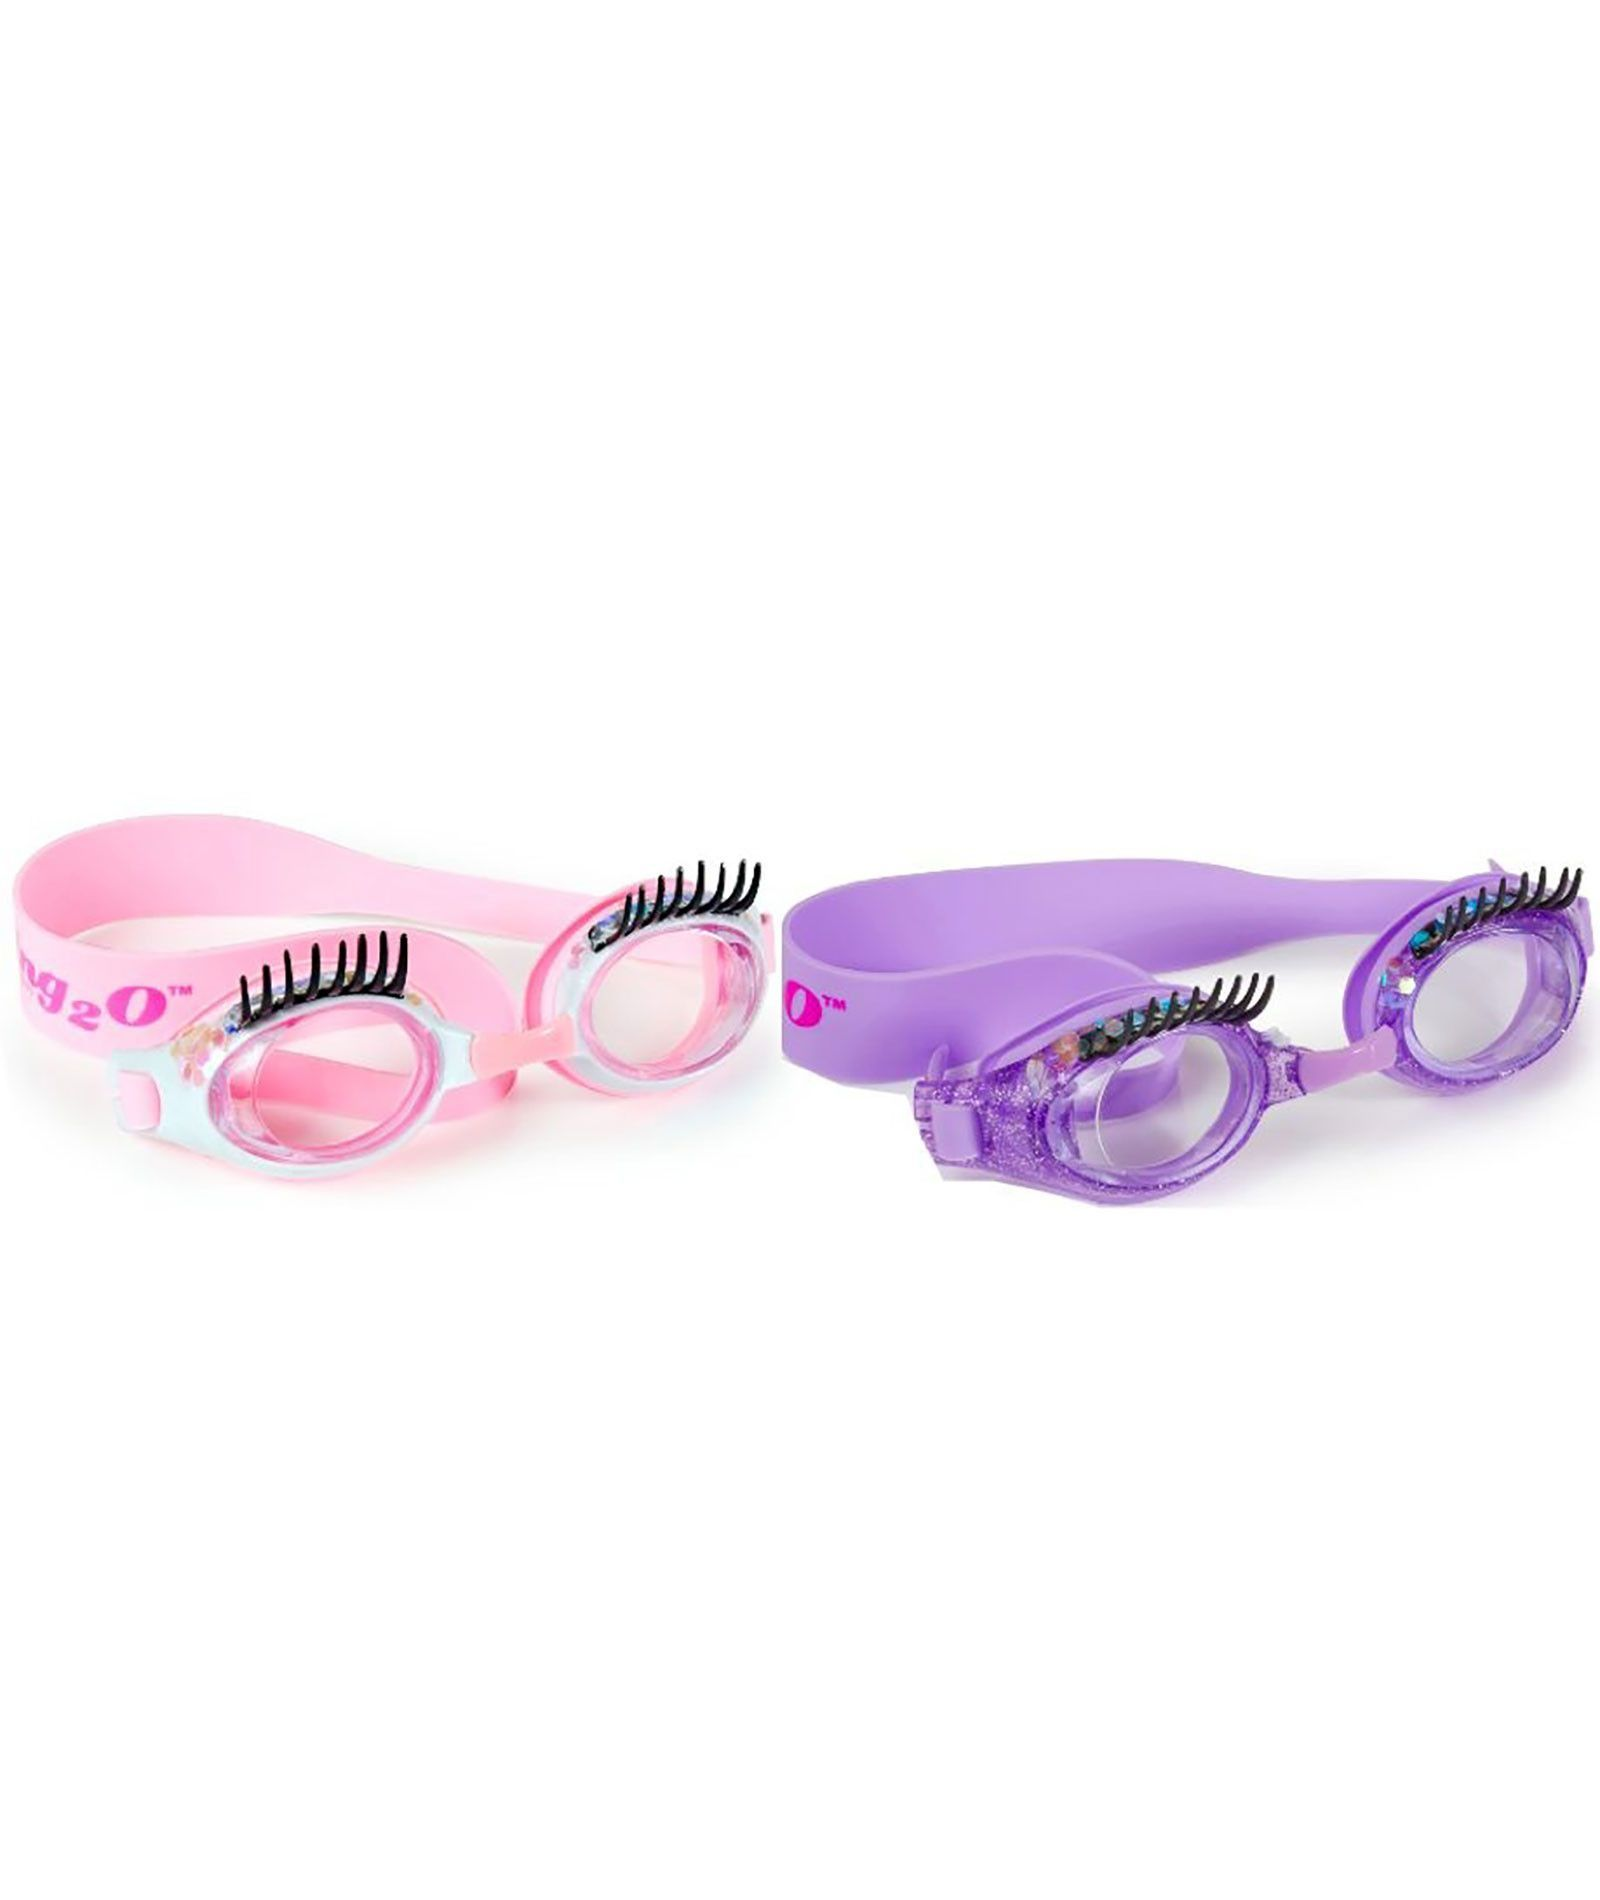 0b023311b544 Bling2o Splash Lash Swim Goggles